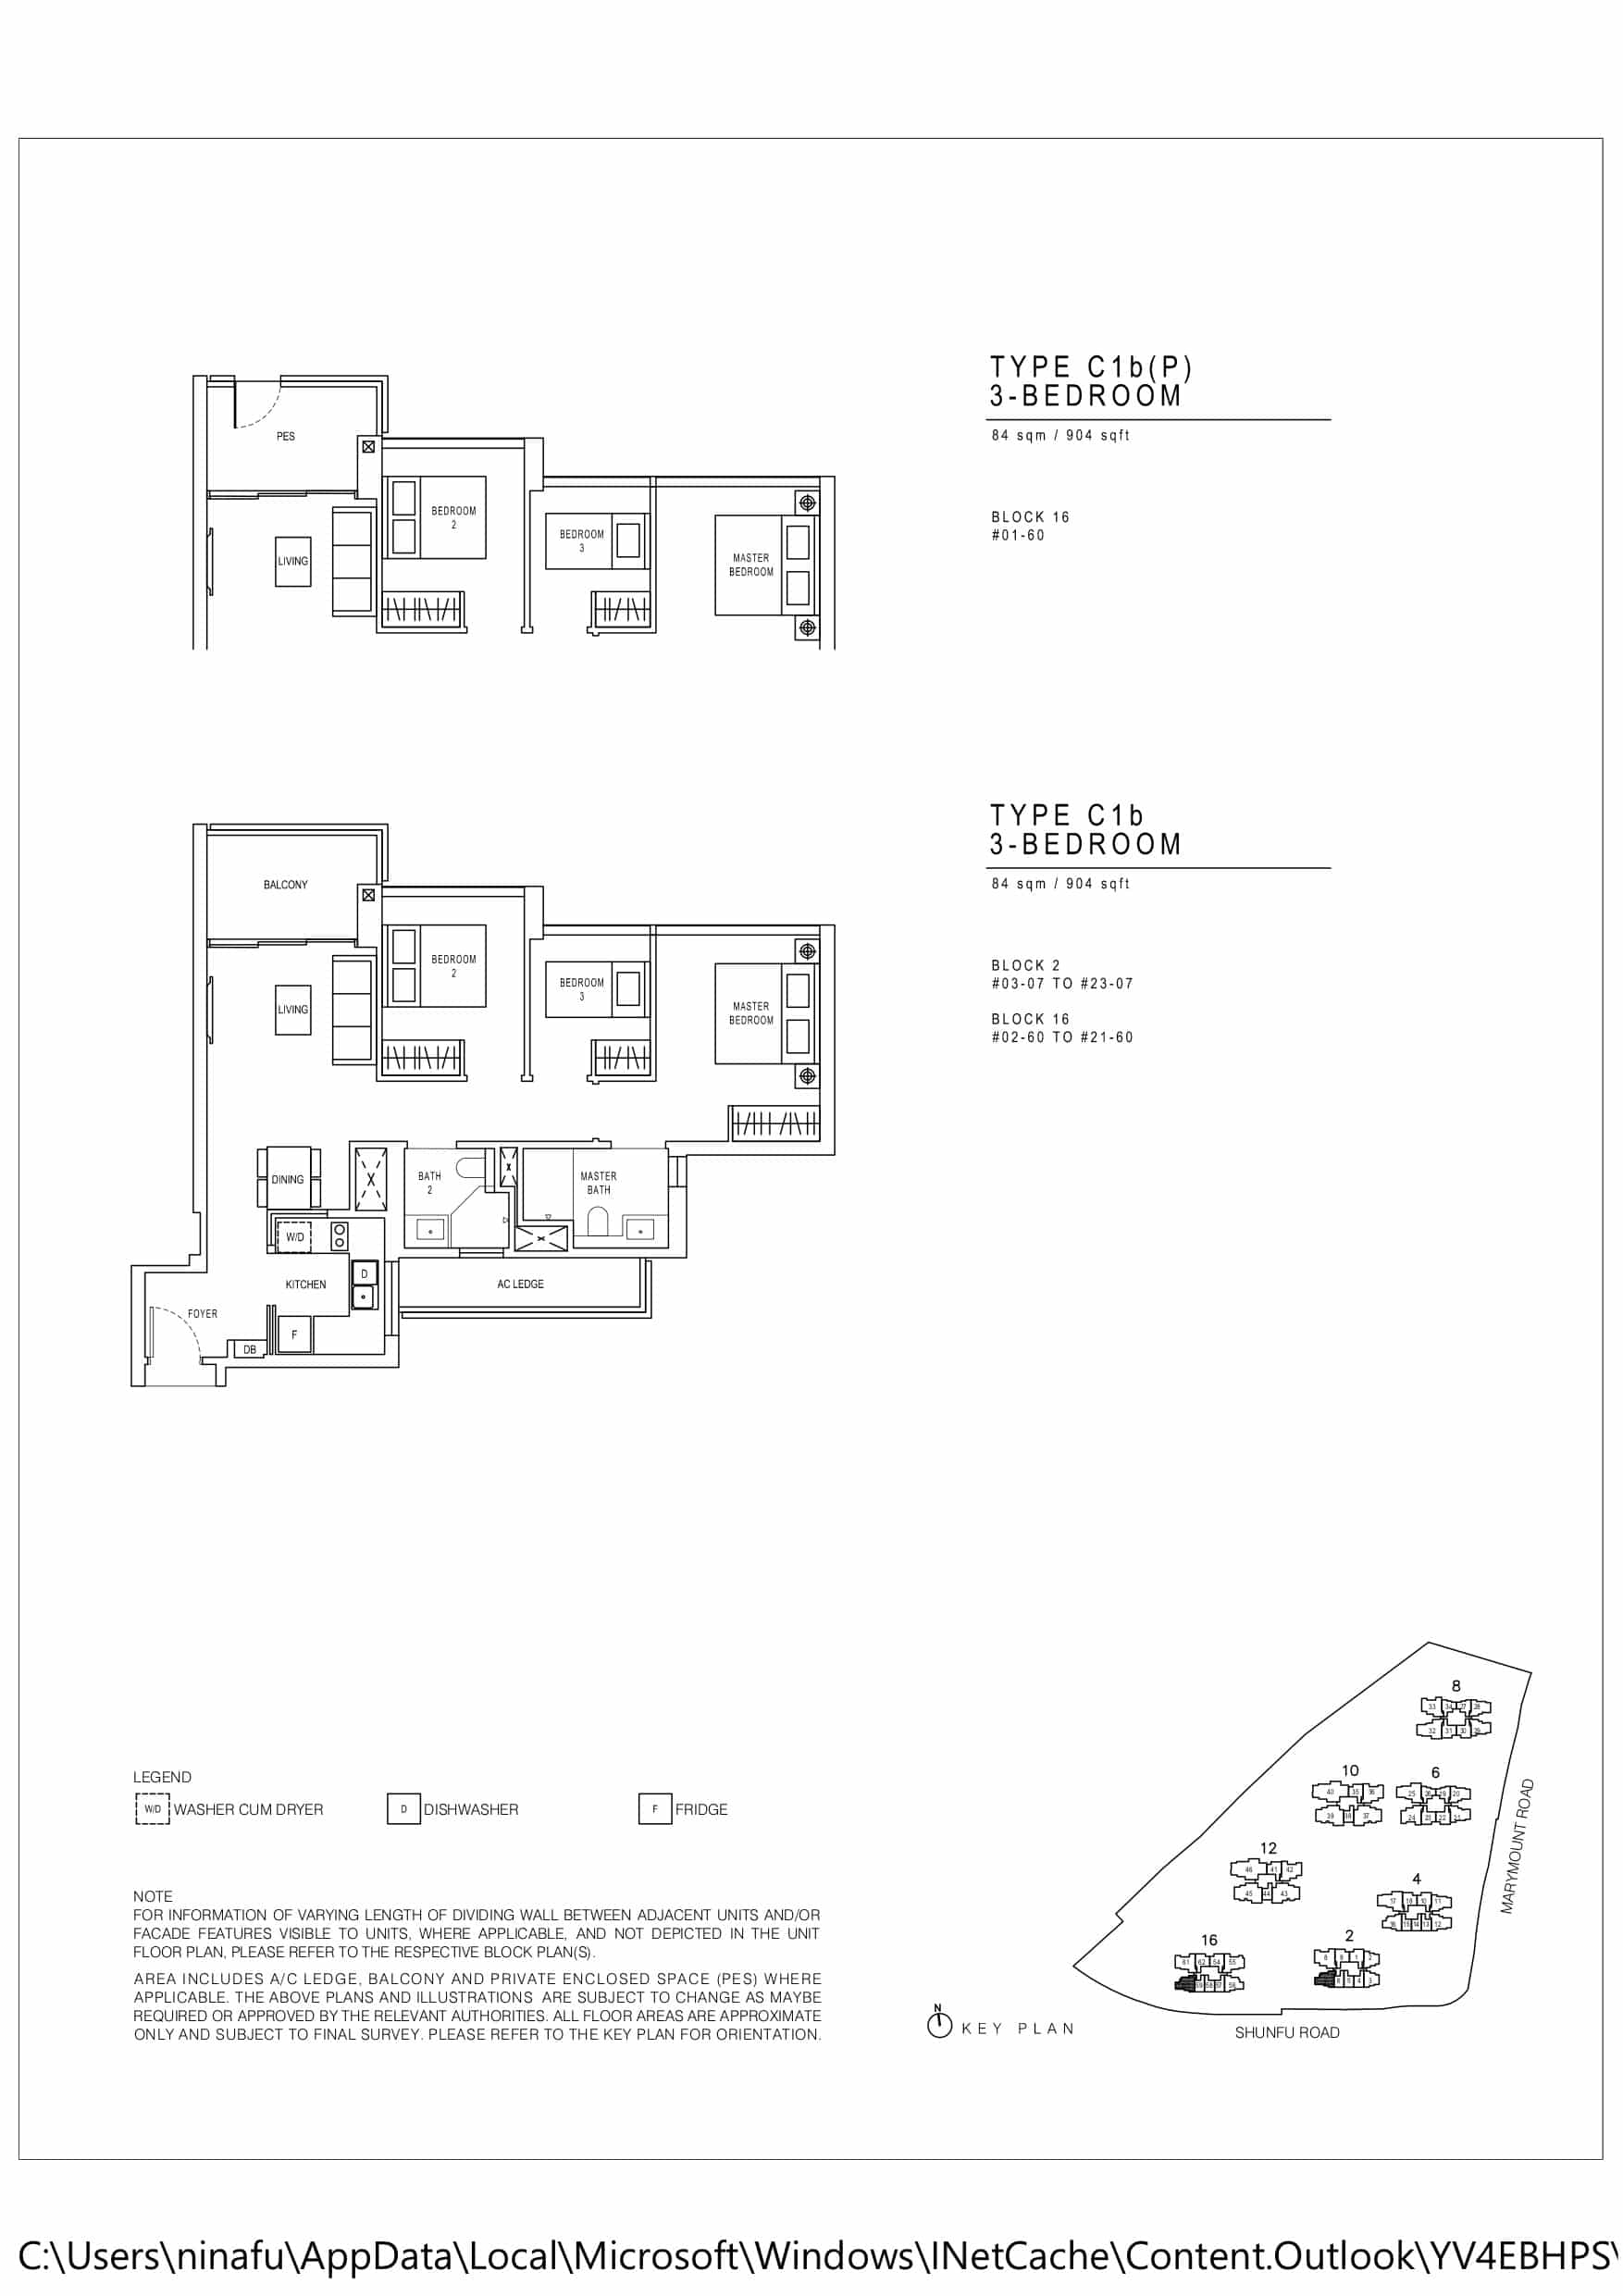 Jadescape_floor_plans_Singapore_c1b